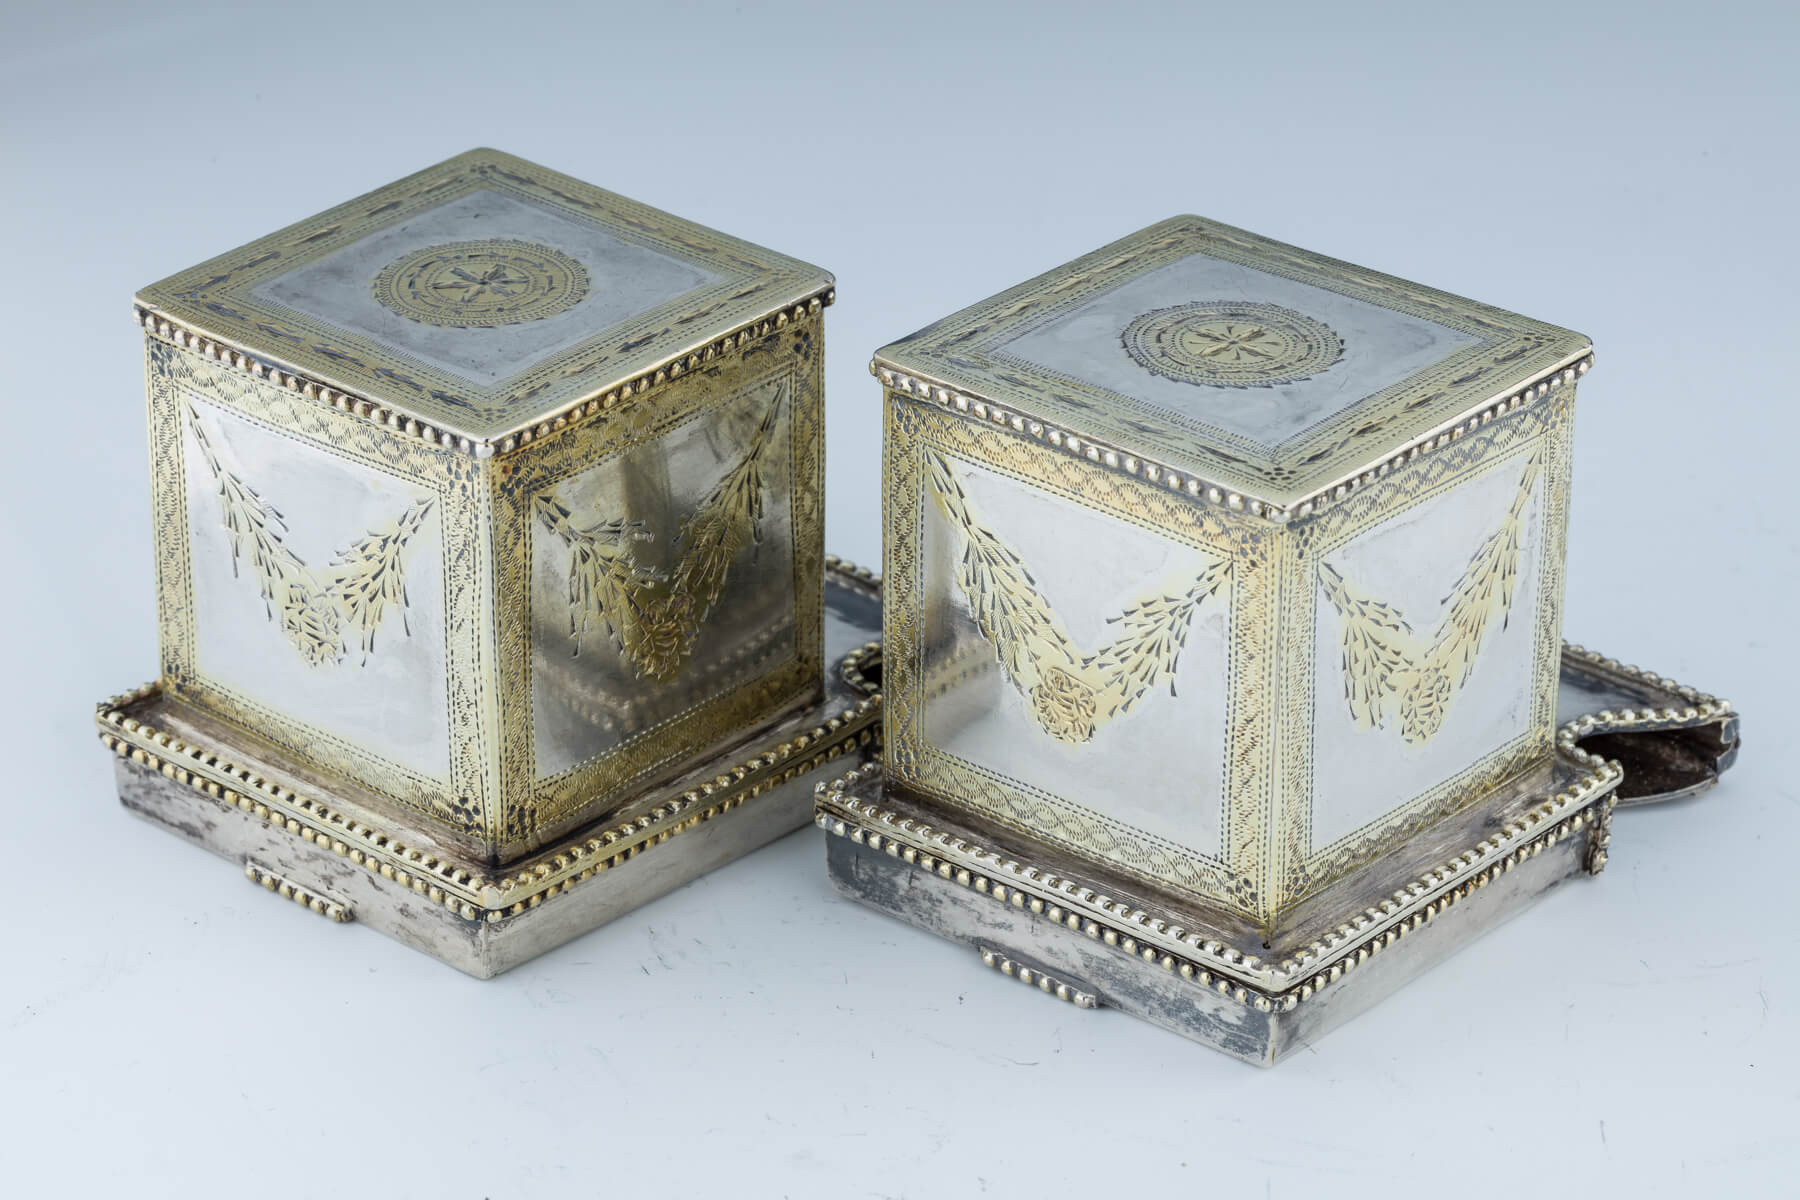 46. A Pair Of Silver Tefillin Cases